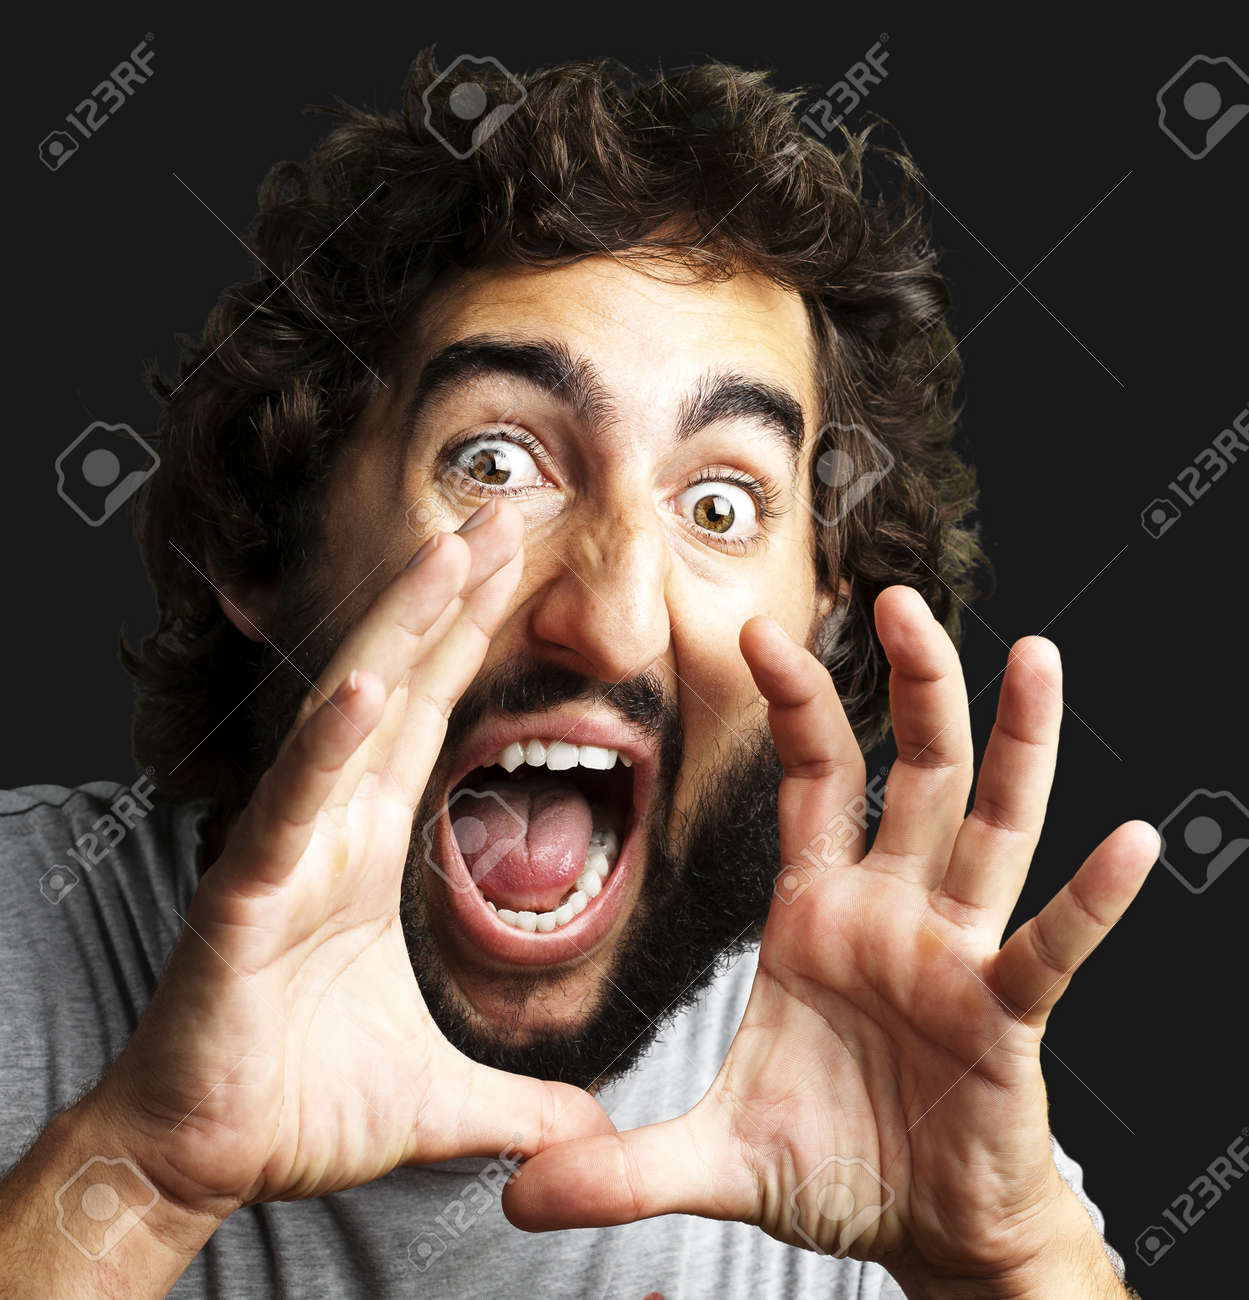 portrait of young man screaming against a black background Stock Photo - 12656806